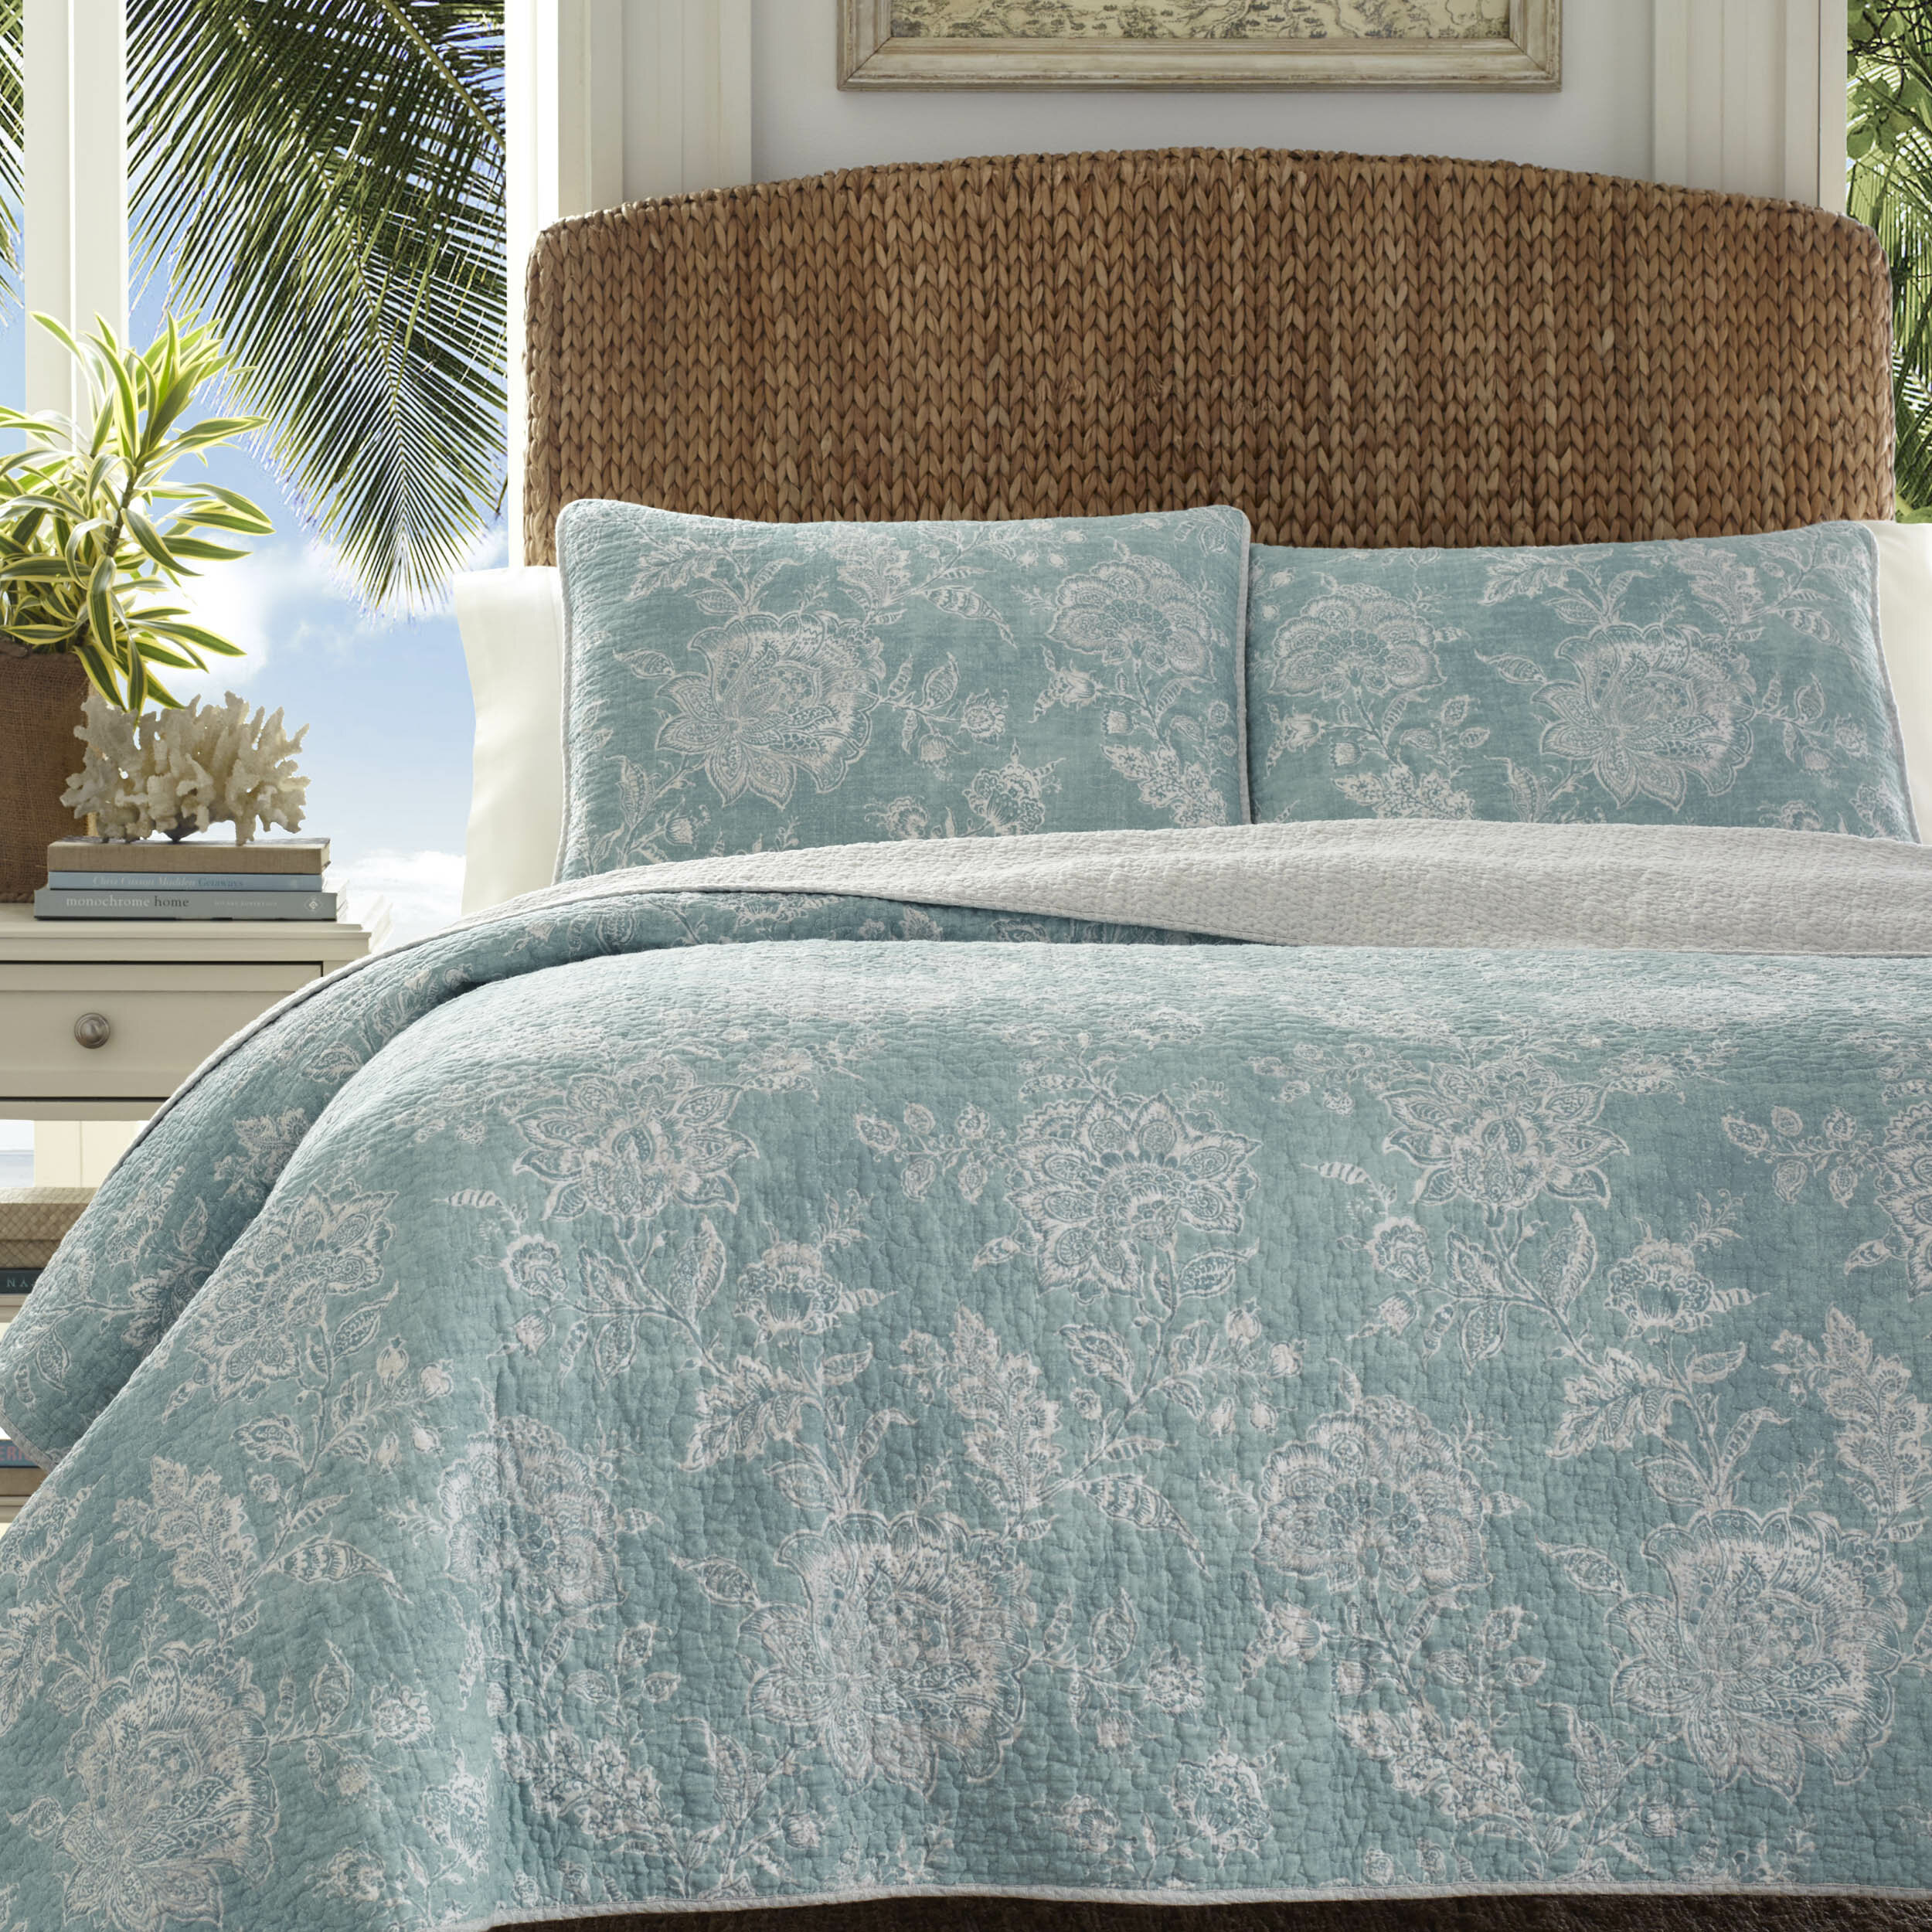 product free shipping island set bath bahama tommy overstock comforter today memory king bedding